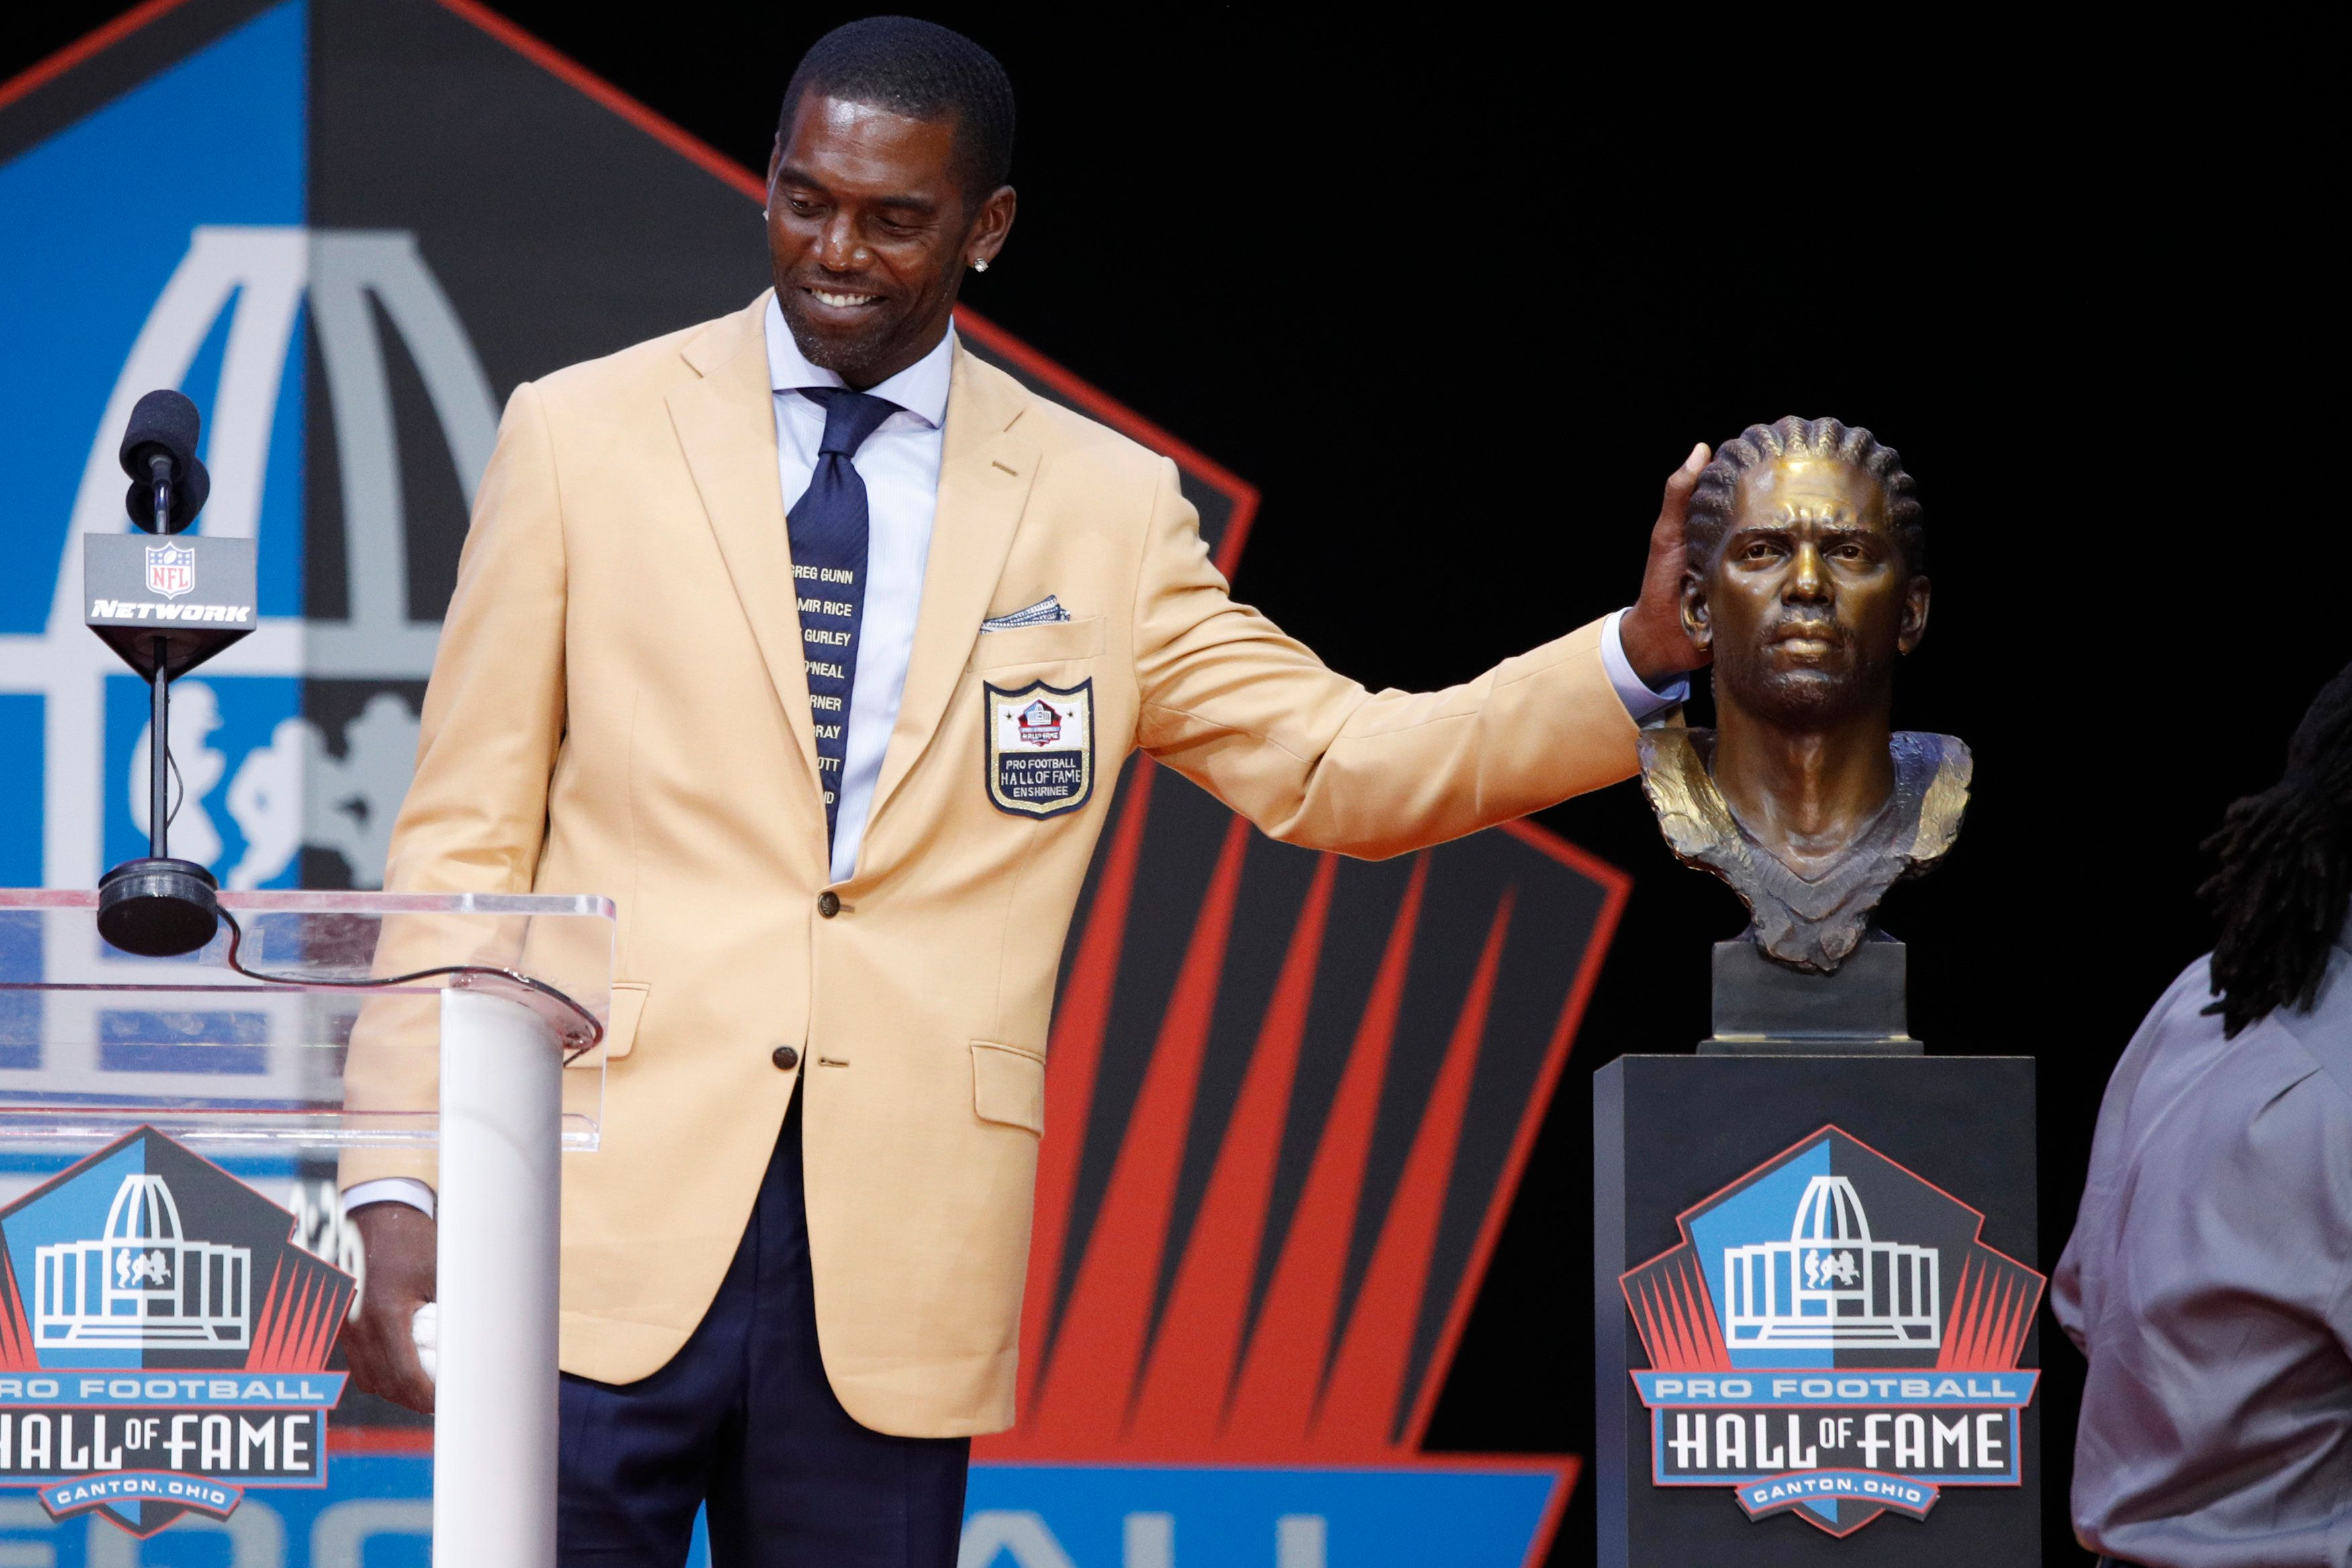 CANTON, OH - AUGUST 04: Randy Moss reacts during the 2018 NFL Hall of Fame Enshrinement Ceremony at Tom Benson Hall of Fame Stadium on August 4, 2018 in Canton, Ohio. (Photo by Joe Robbins/Getty Images)